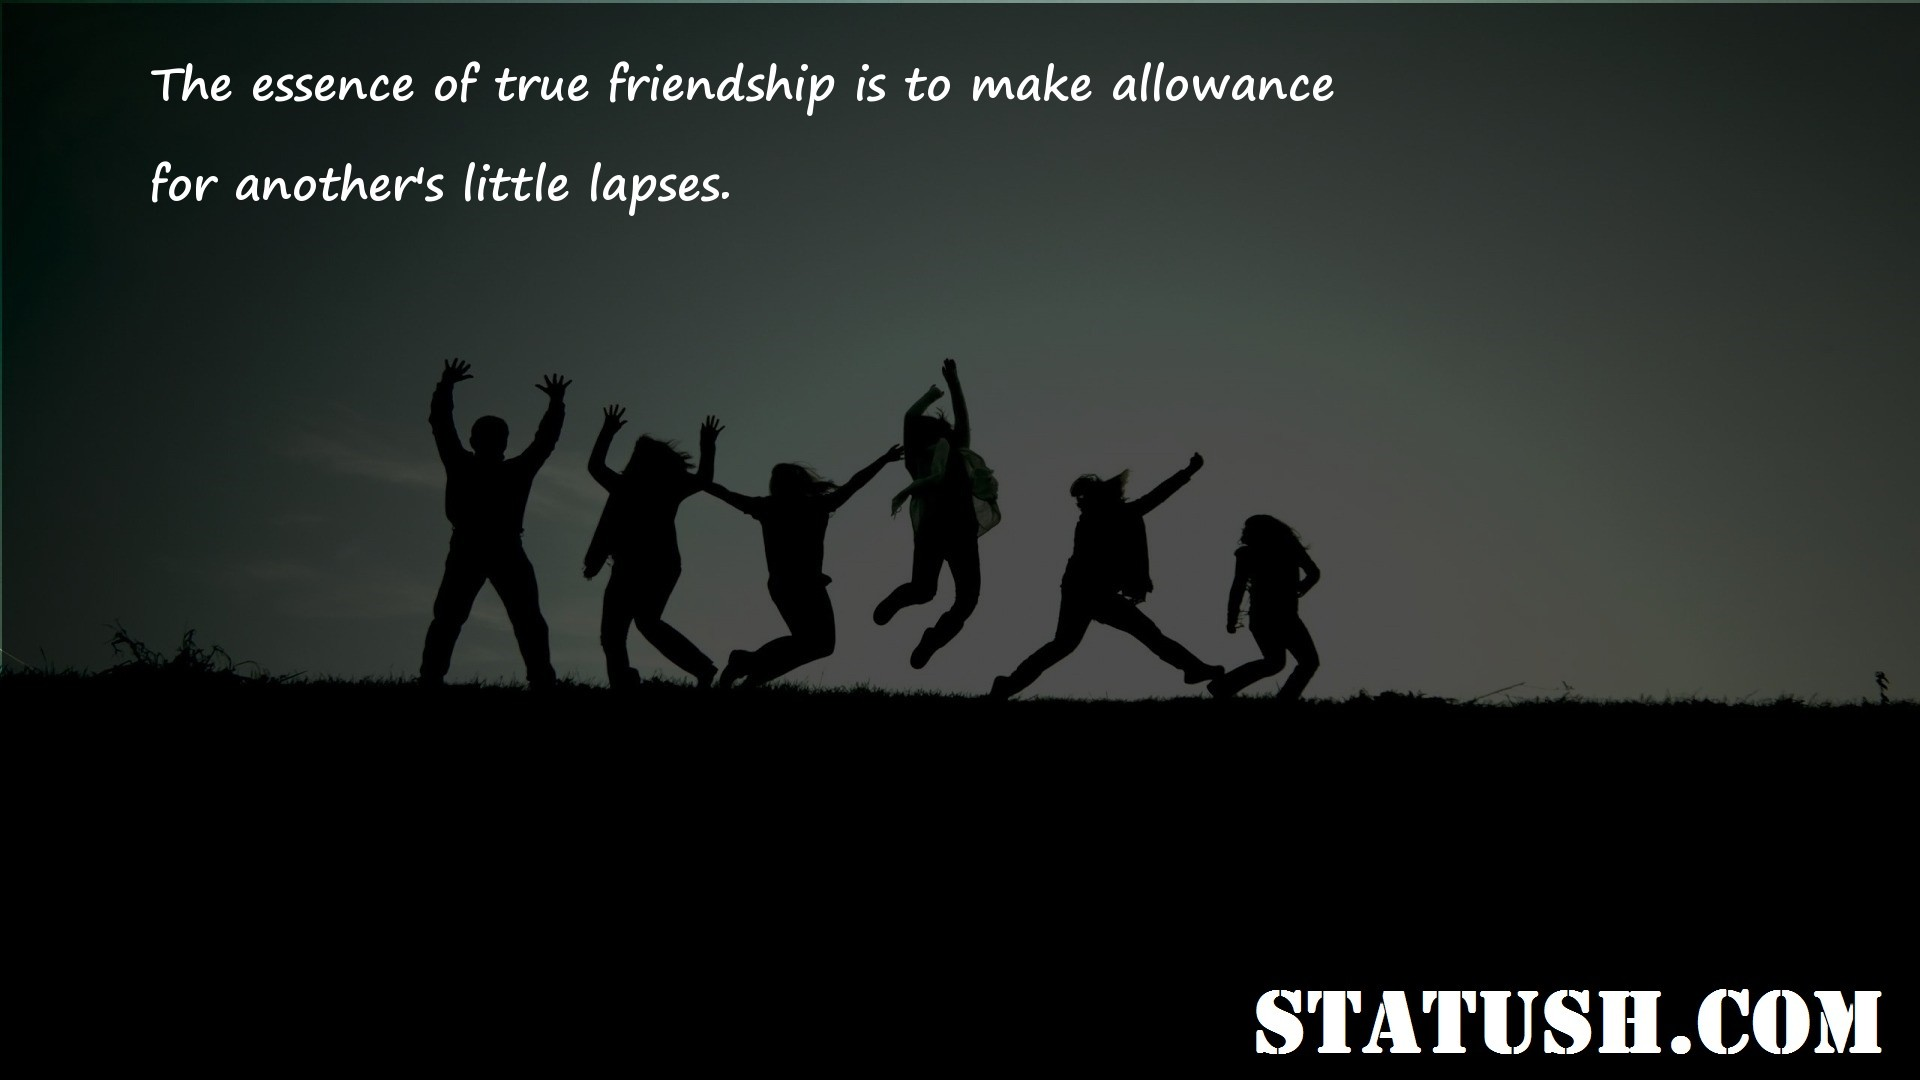 The essence of true friendship is to make allowance